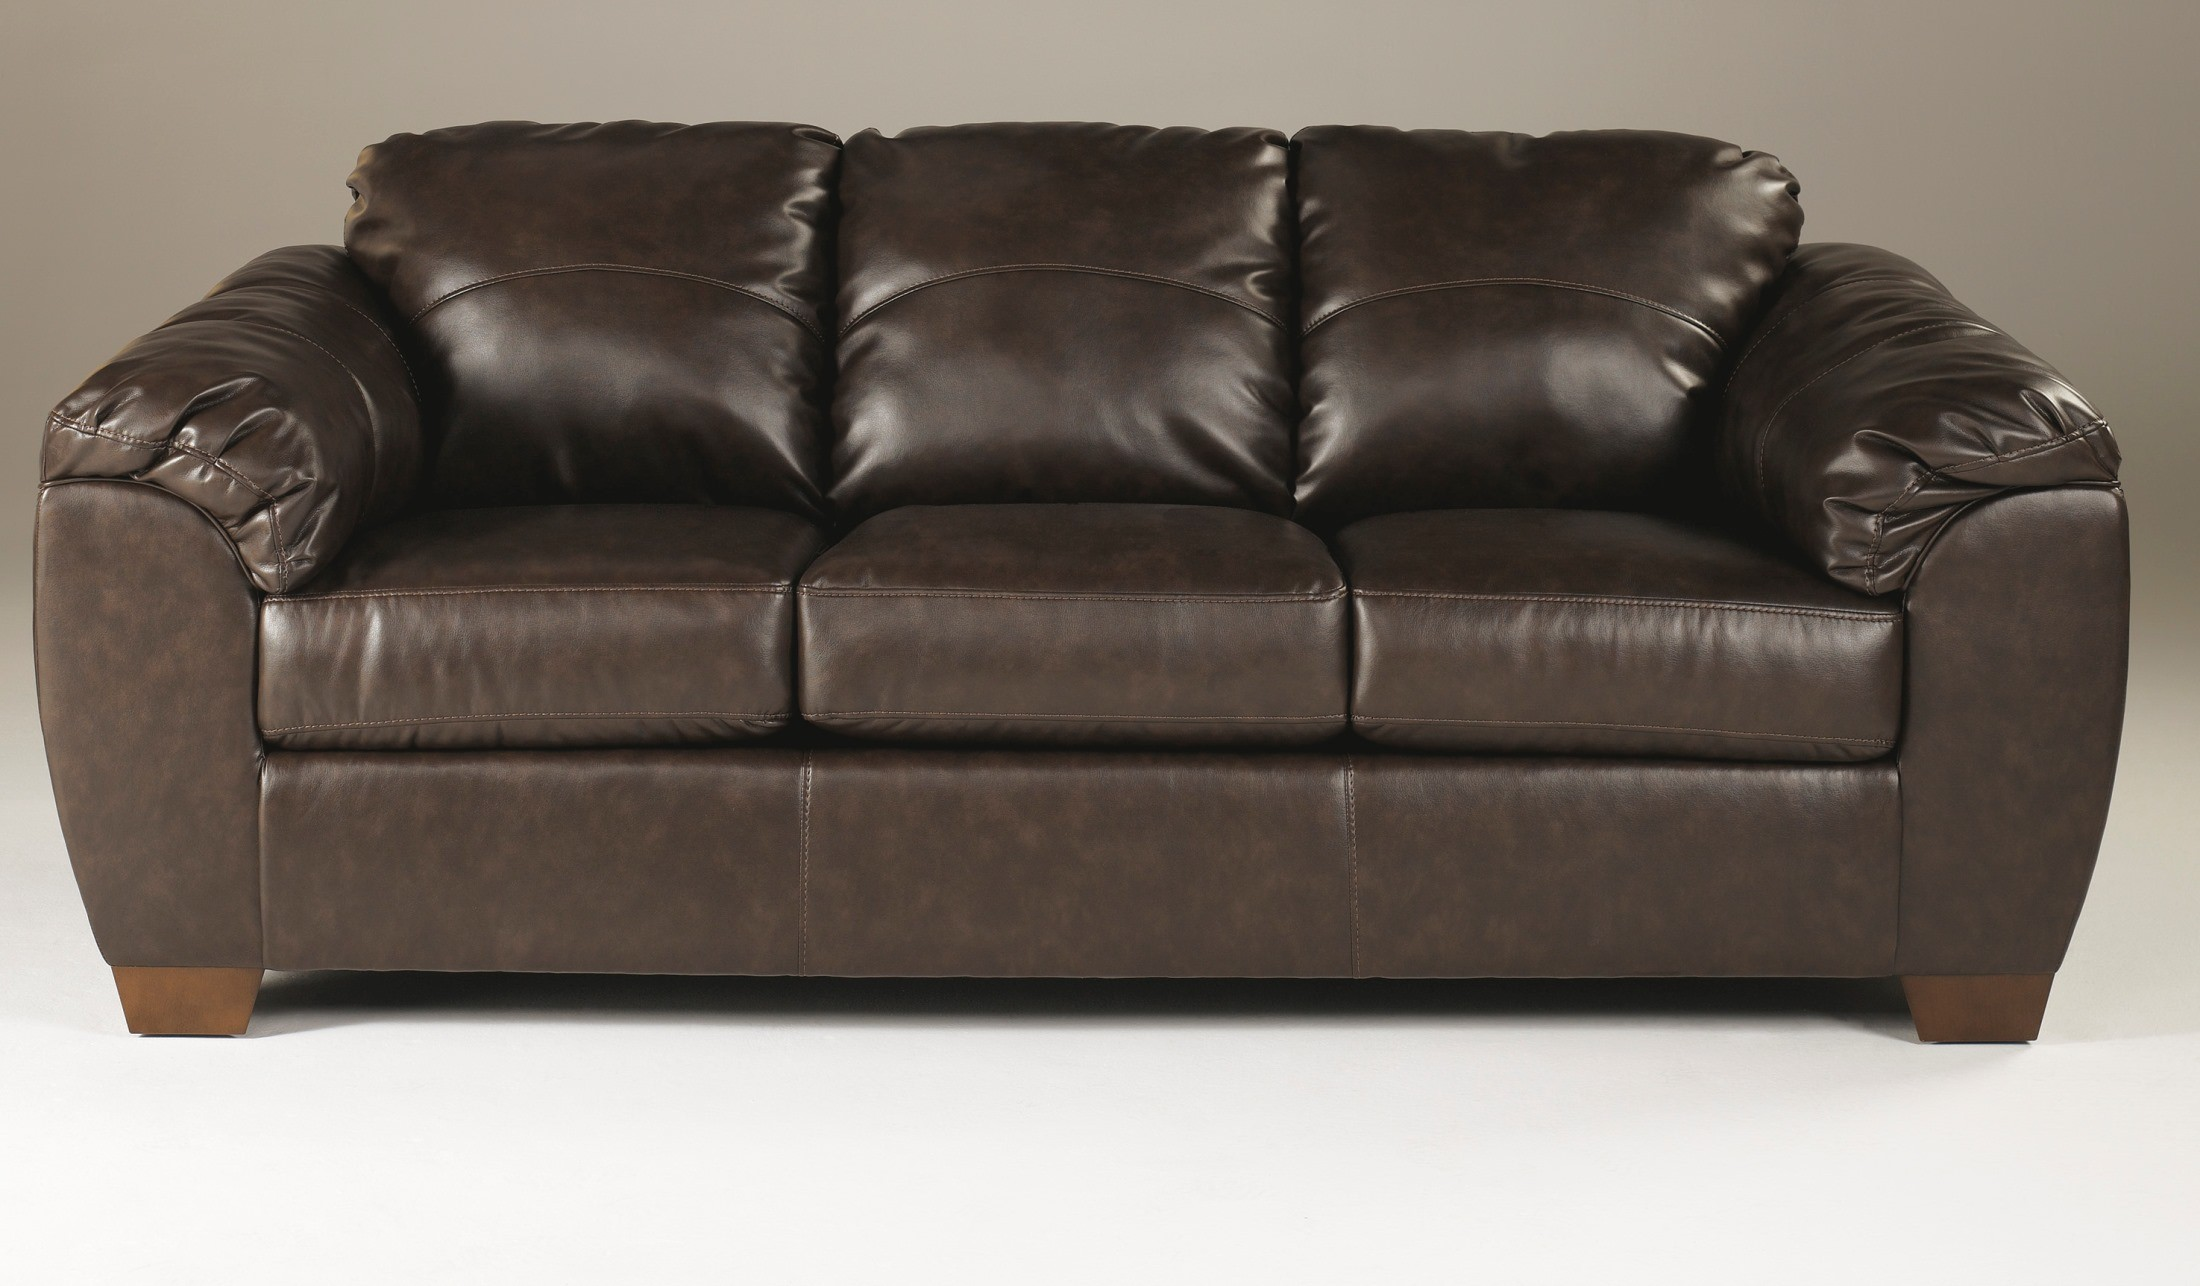 durablend sofa do fleas live in sofas franden cafe from ashley 9880038